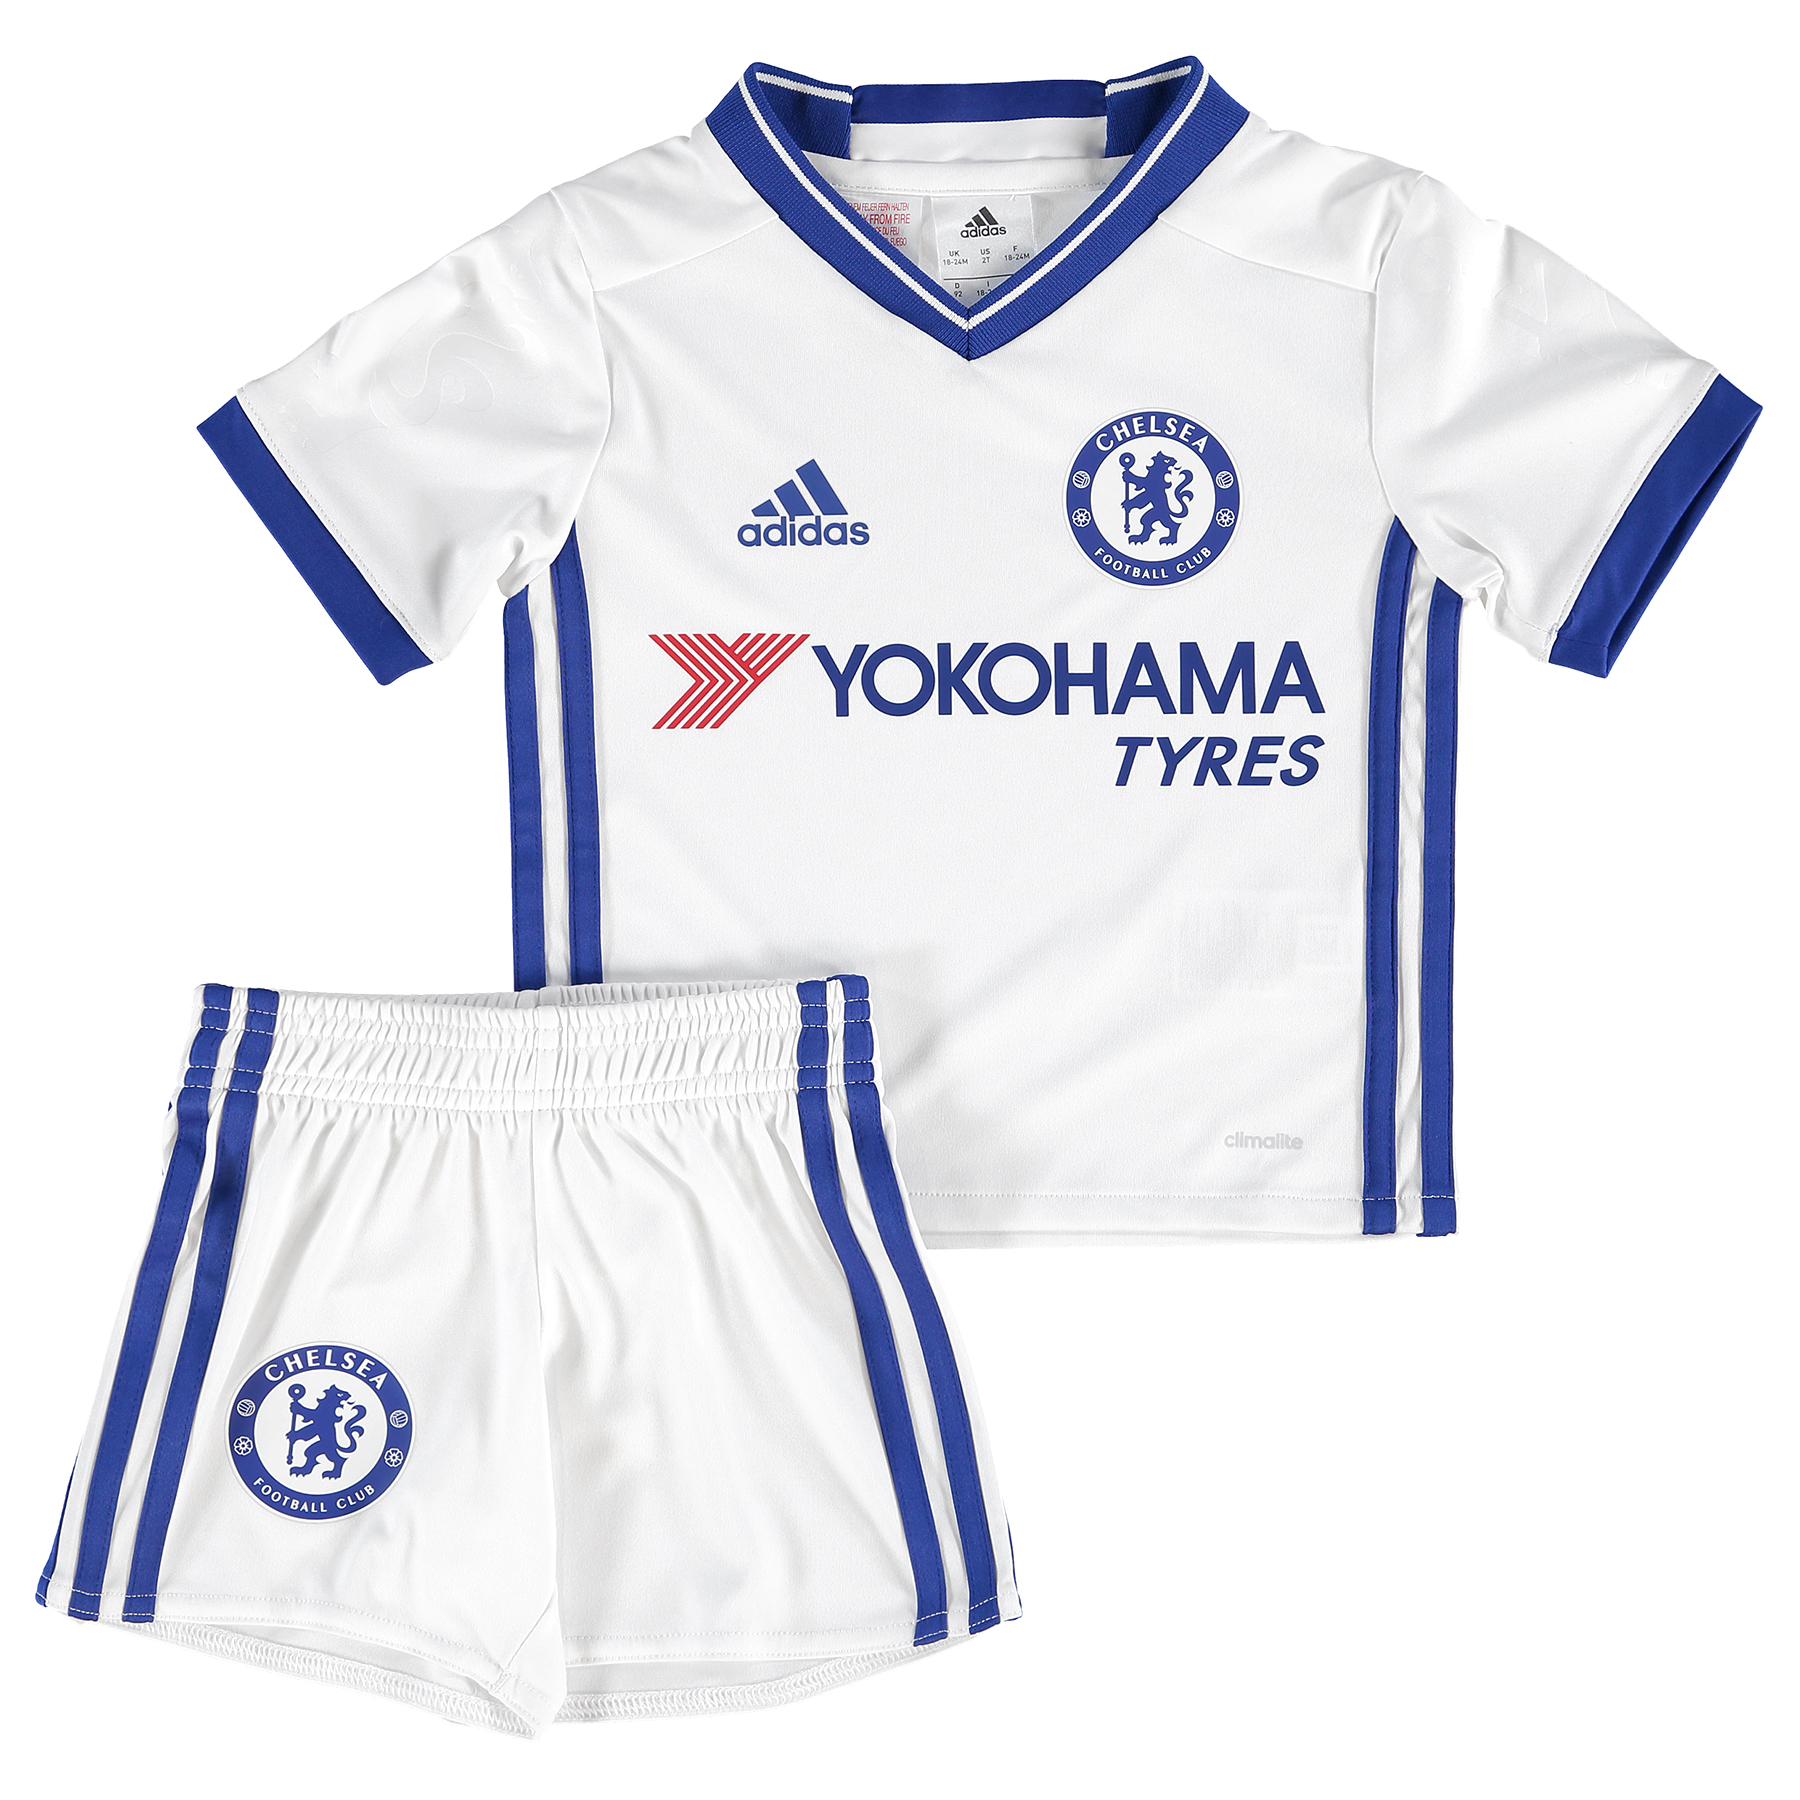 Chelsea Third Mini Kit 16-17   Perfect for any junior Blue, the official Chelsea Third Mini Kit 16-17 helps younger fans in the family take on the professional matchday image of a Premier League star.   With climacool® technology helping them stay cool and comfortable, this special set is comprised of both jersey and shorts; each in the striking style of the Chelsea alternate third kit.   Details:   Regular fit V-neck jersey 13.5 cm inseam climalite® fabric  'CHELSEA FC' on back collar panel Chelsea FC heat-transfer crest on left chest Embossed Chelsea FC lion emblem on sleeve Elastic waist shorts Chelsea FC heat-transfer crest on right leg Embossed fabric Club crest: heat transfer Engineered Chelsea FC sign off on collar Part of sustainable product program 100% recycled polyester interlock